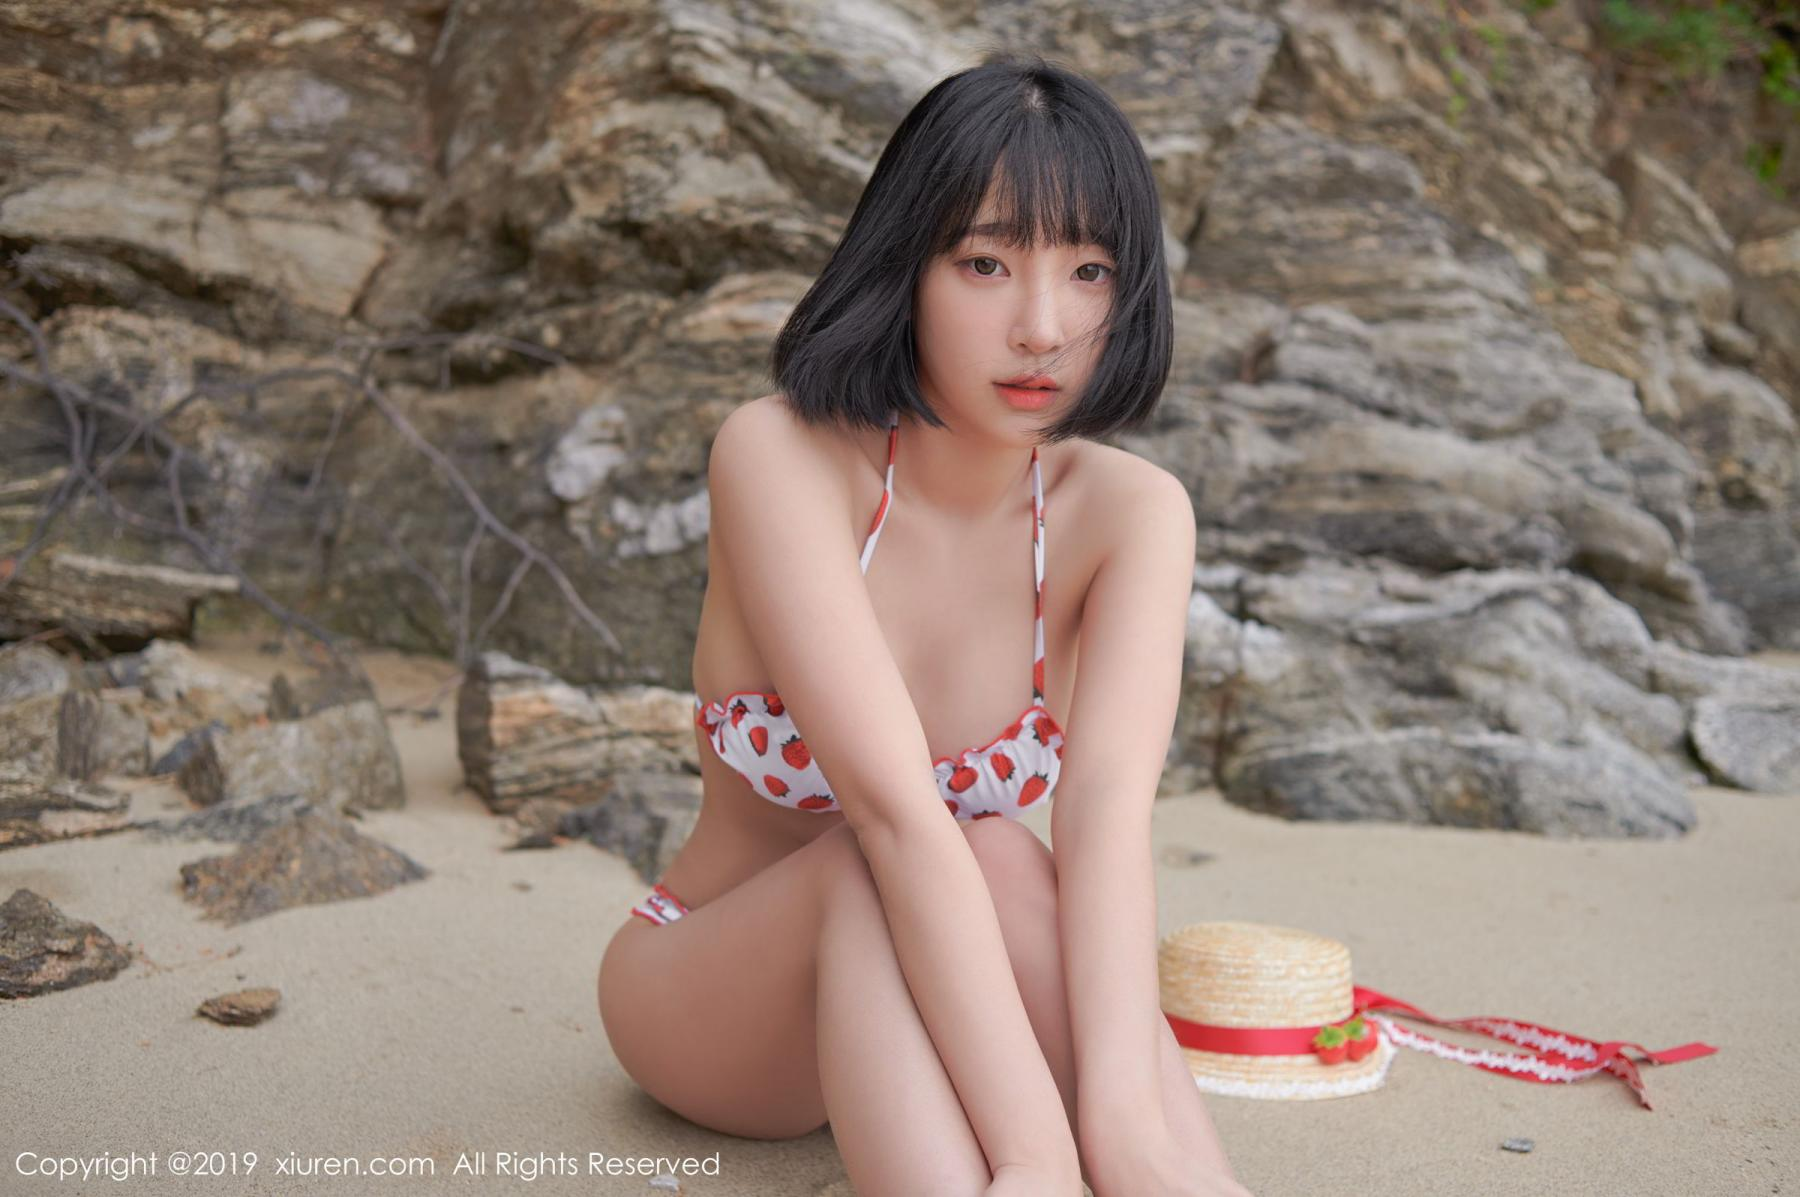 [XiuRen] Vol.1611 Model Qing Qing 31P, Beach, Bikini, Kang In Kyung, Xiuren